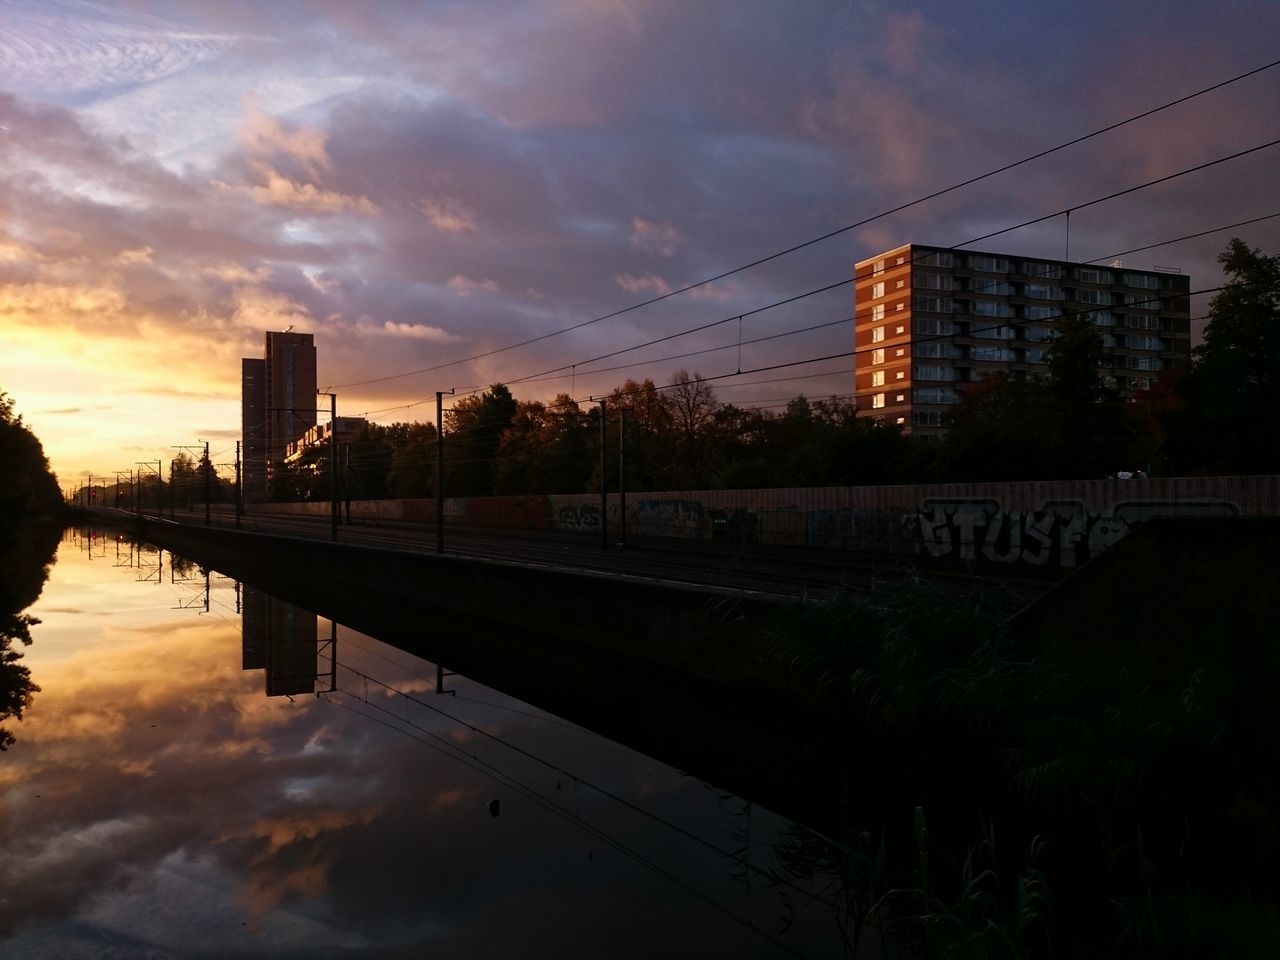 sunset, sky, cloud - sky, reflection, architecture, dusk, built structure, water, tree, outdoors, nature, no people, cable, transportation, building exterior, city, beauty in nature, day